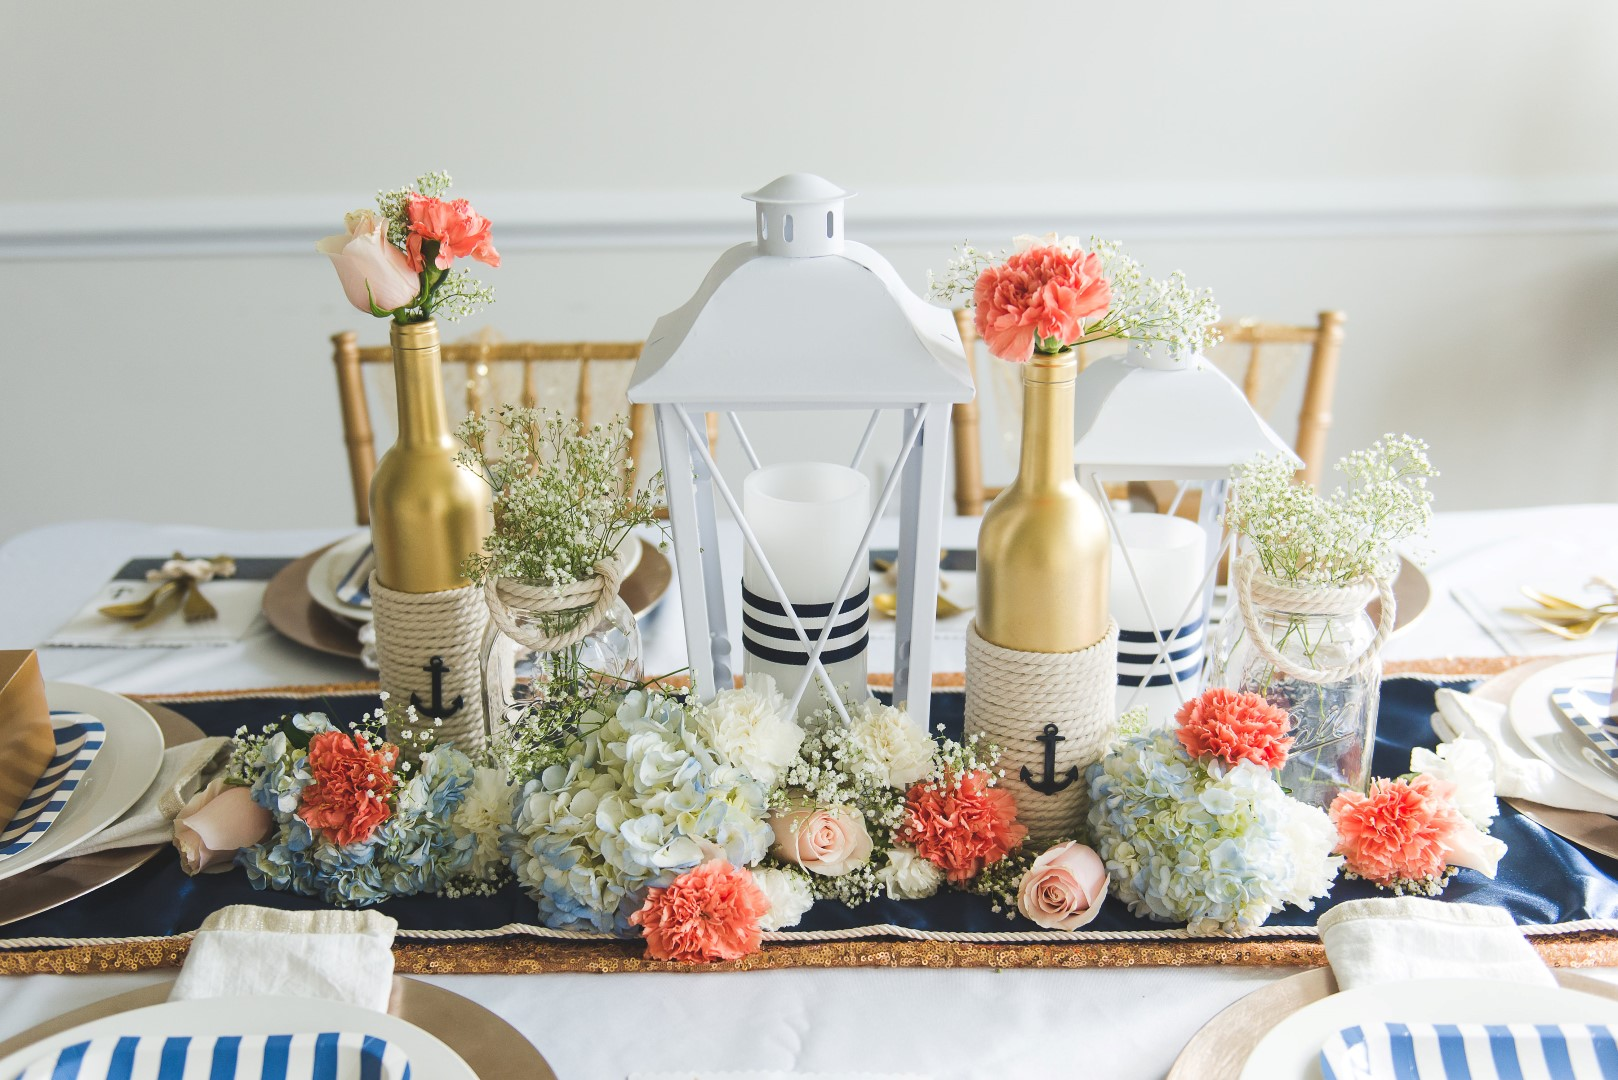 DIY Bride: Elegant Nautical Wedding Centerpiece Tutorial